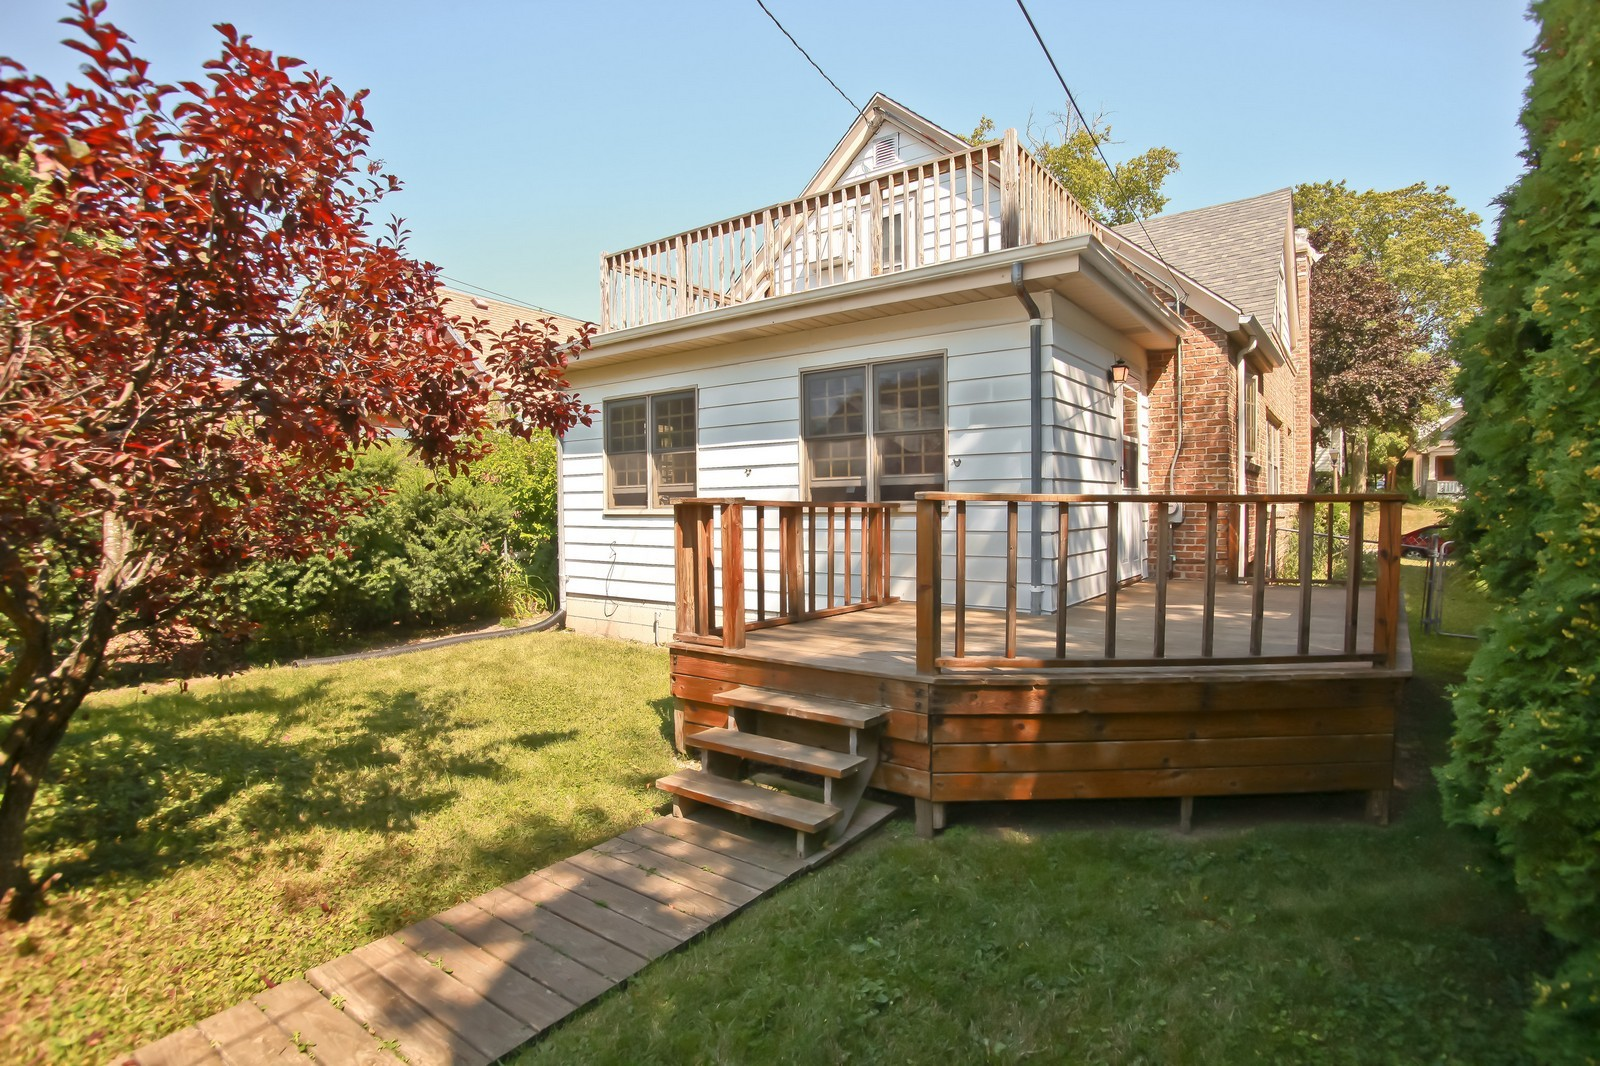 Real Estate Photography - 4459 N Newhall Ave, Shorewood, WI, 53211 - Deck